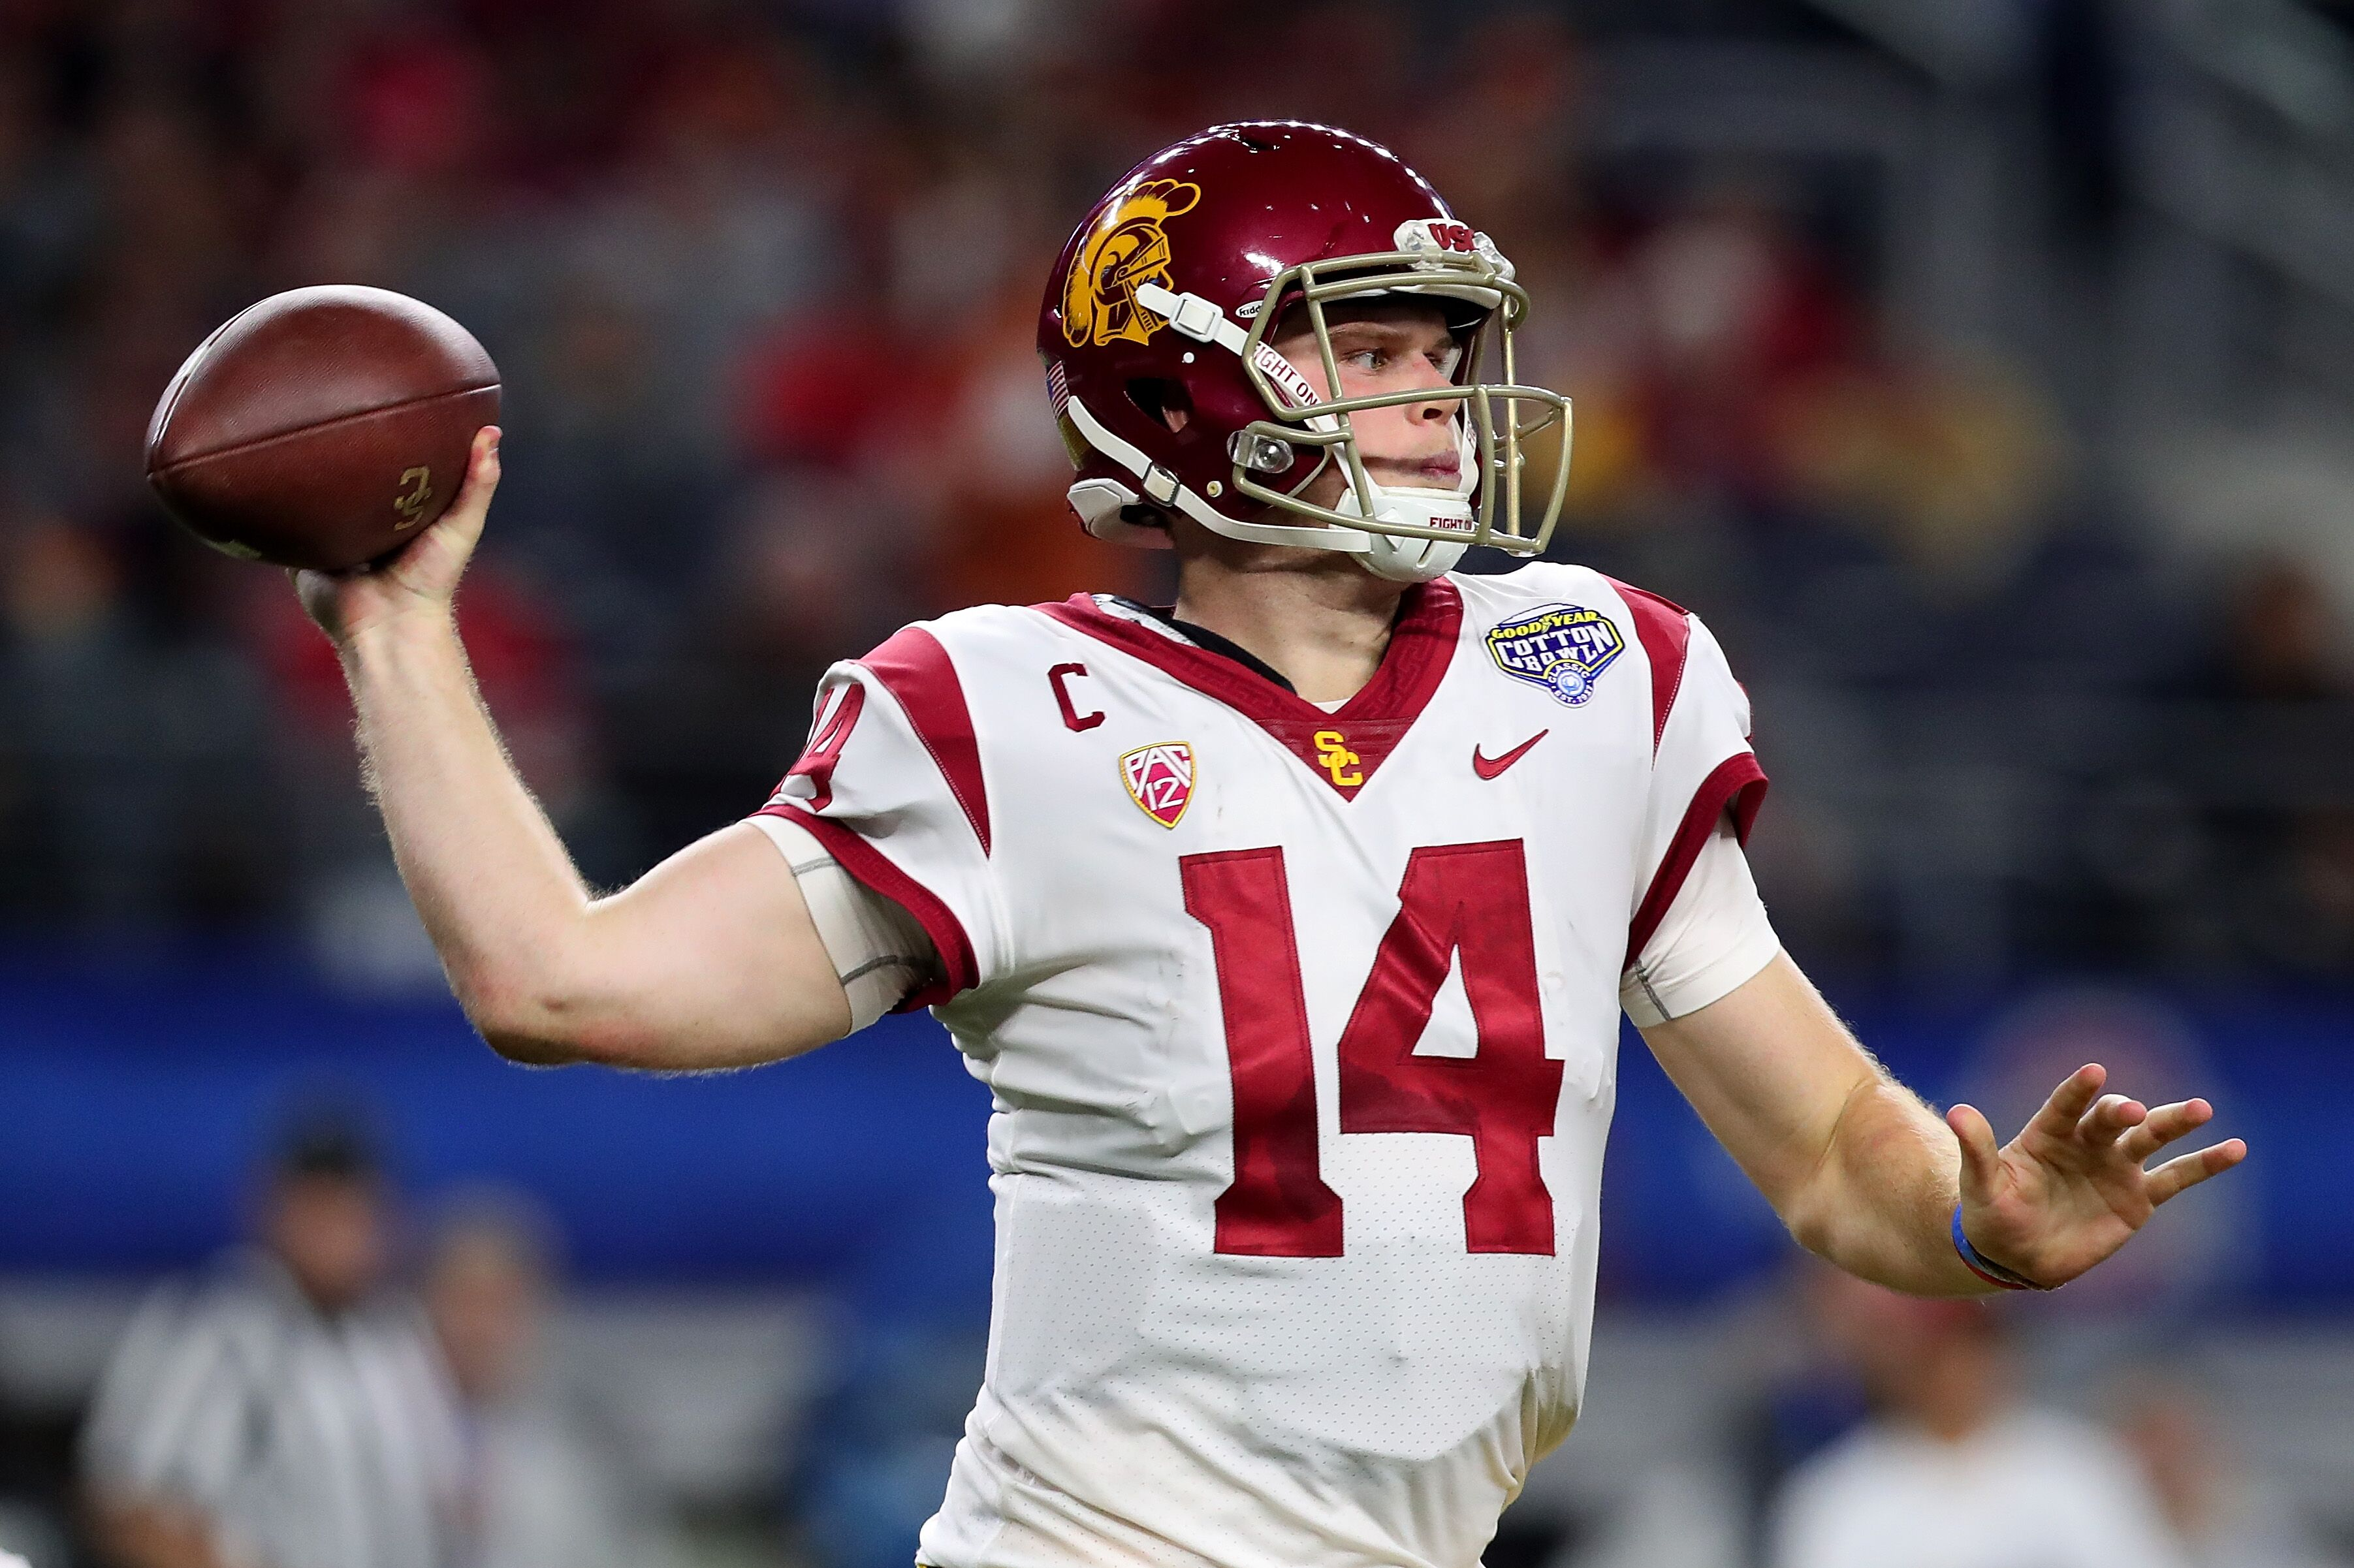 e8ffc1a599f Sam Darnold looks sloppy in his first Jets practice - NFL Headlines